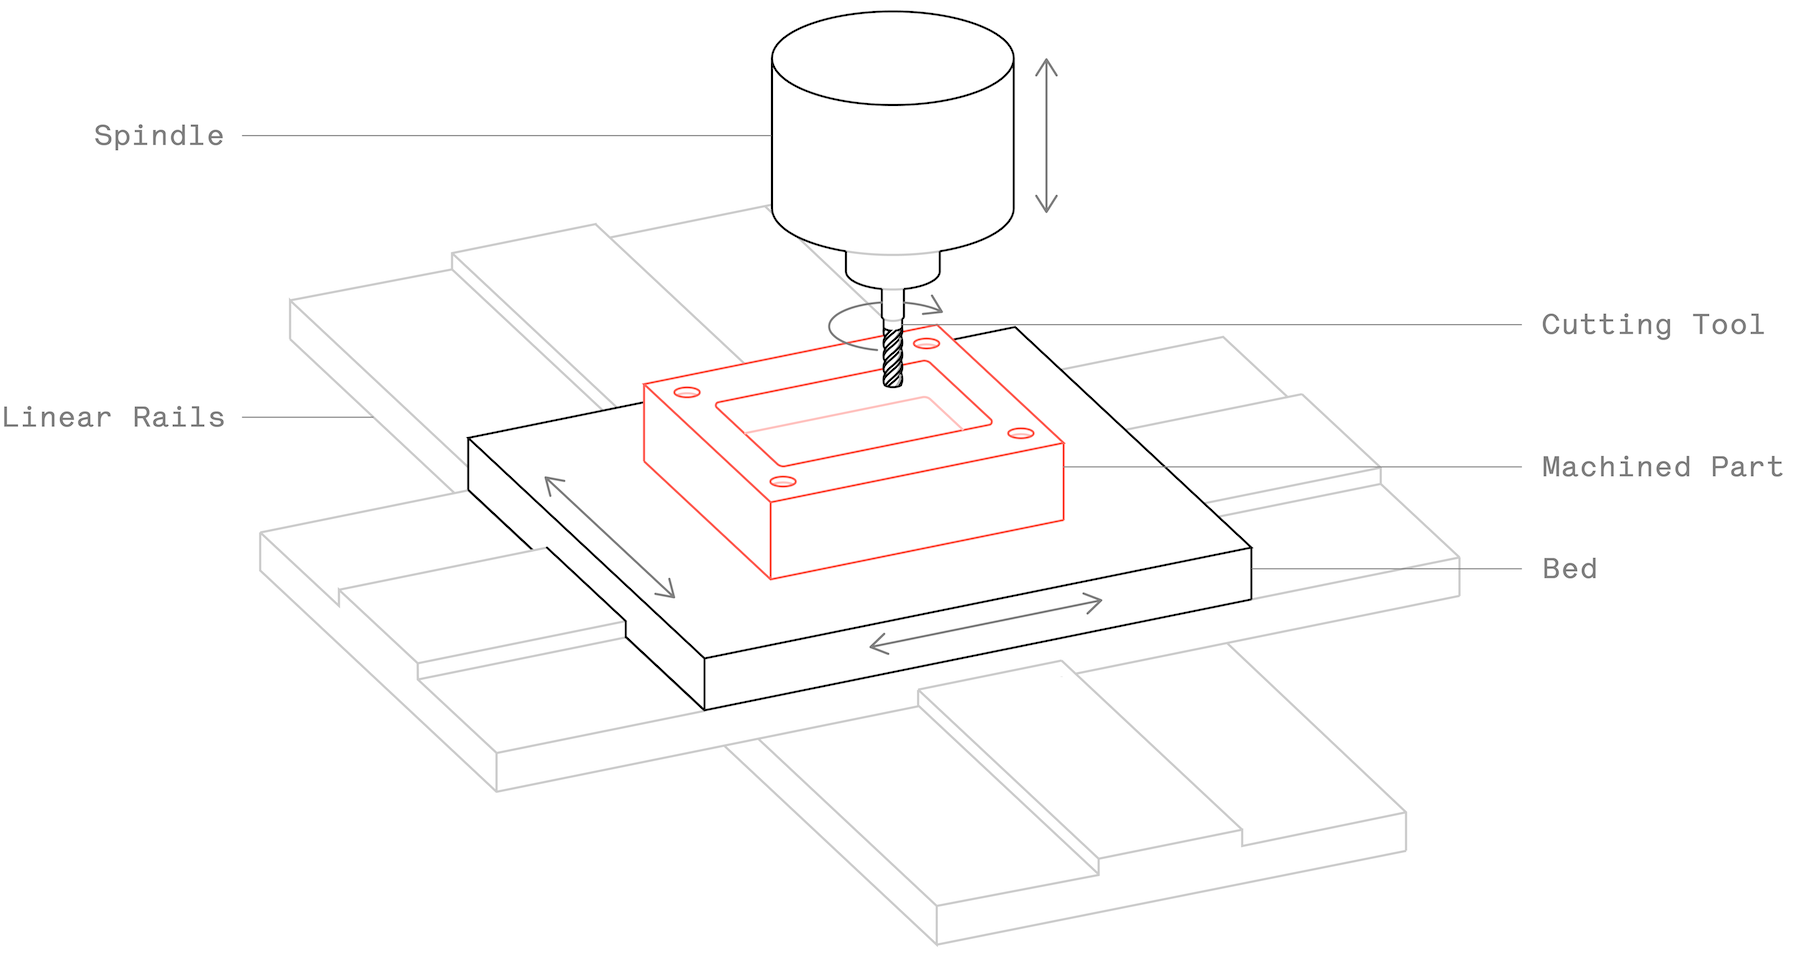 Schematic of a typical CNC milling machine